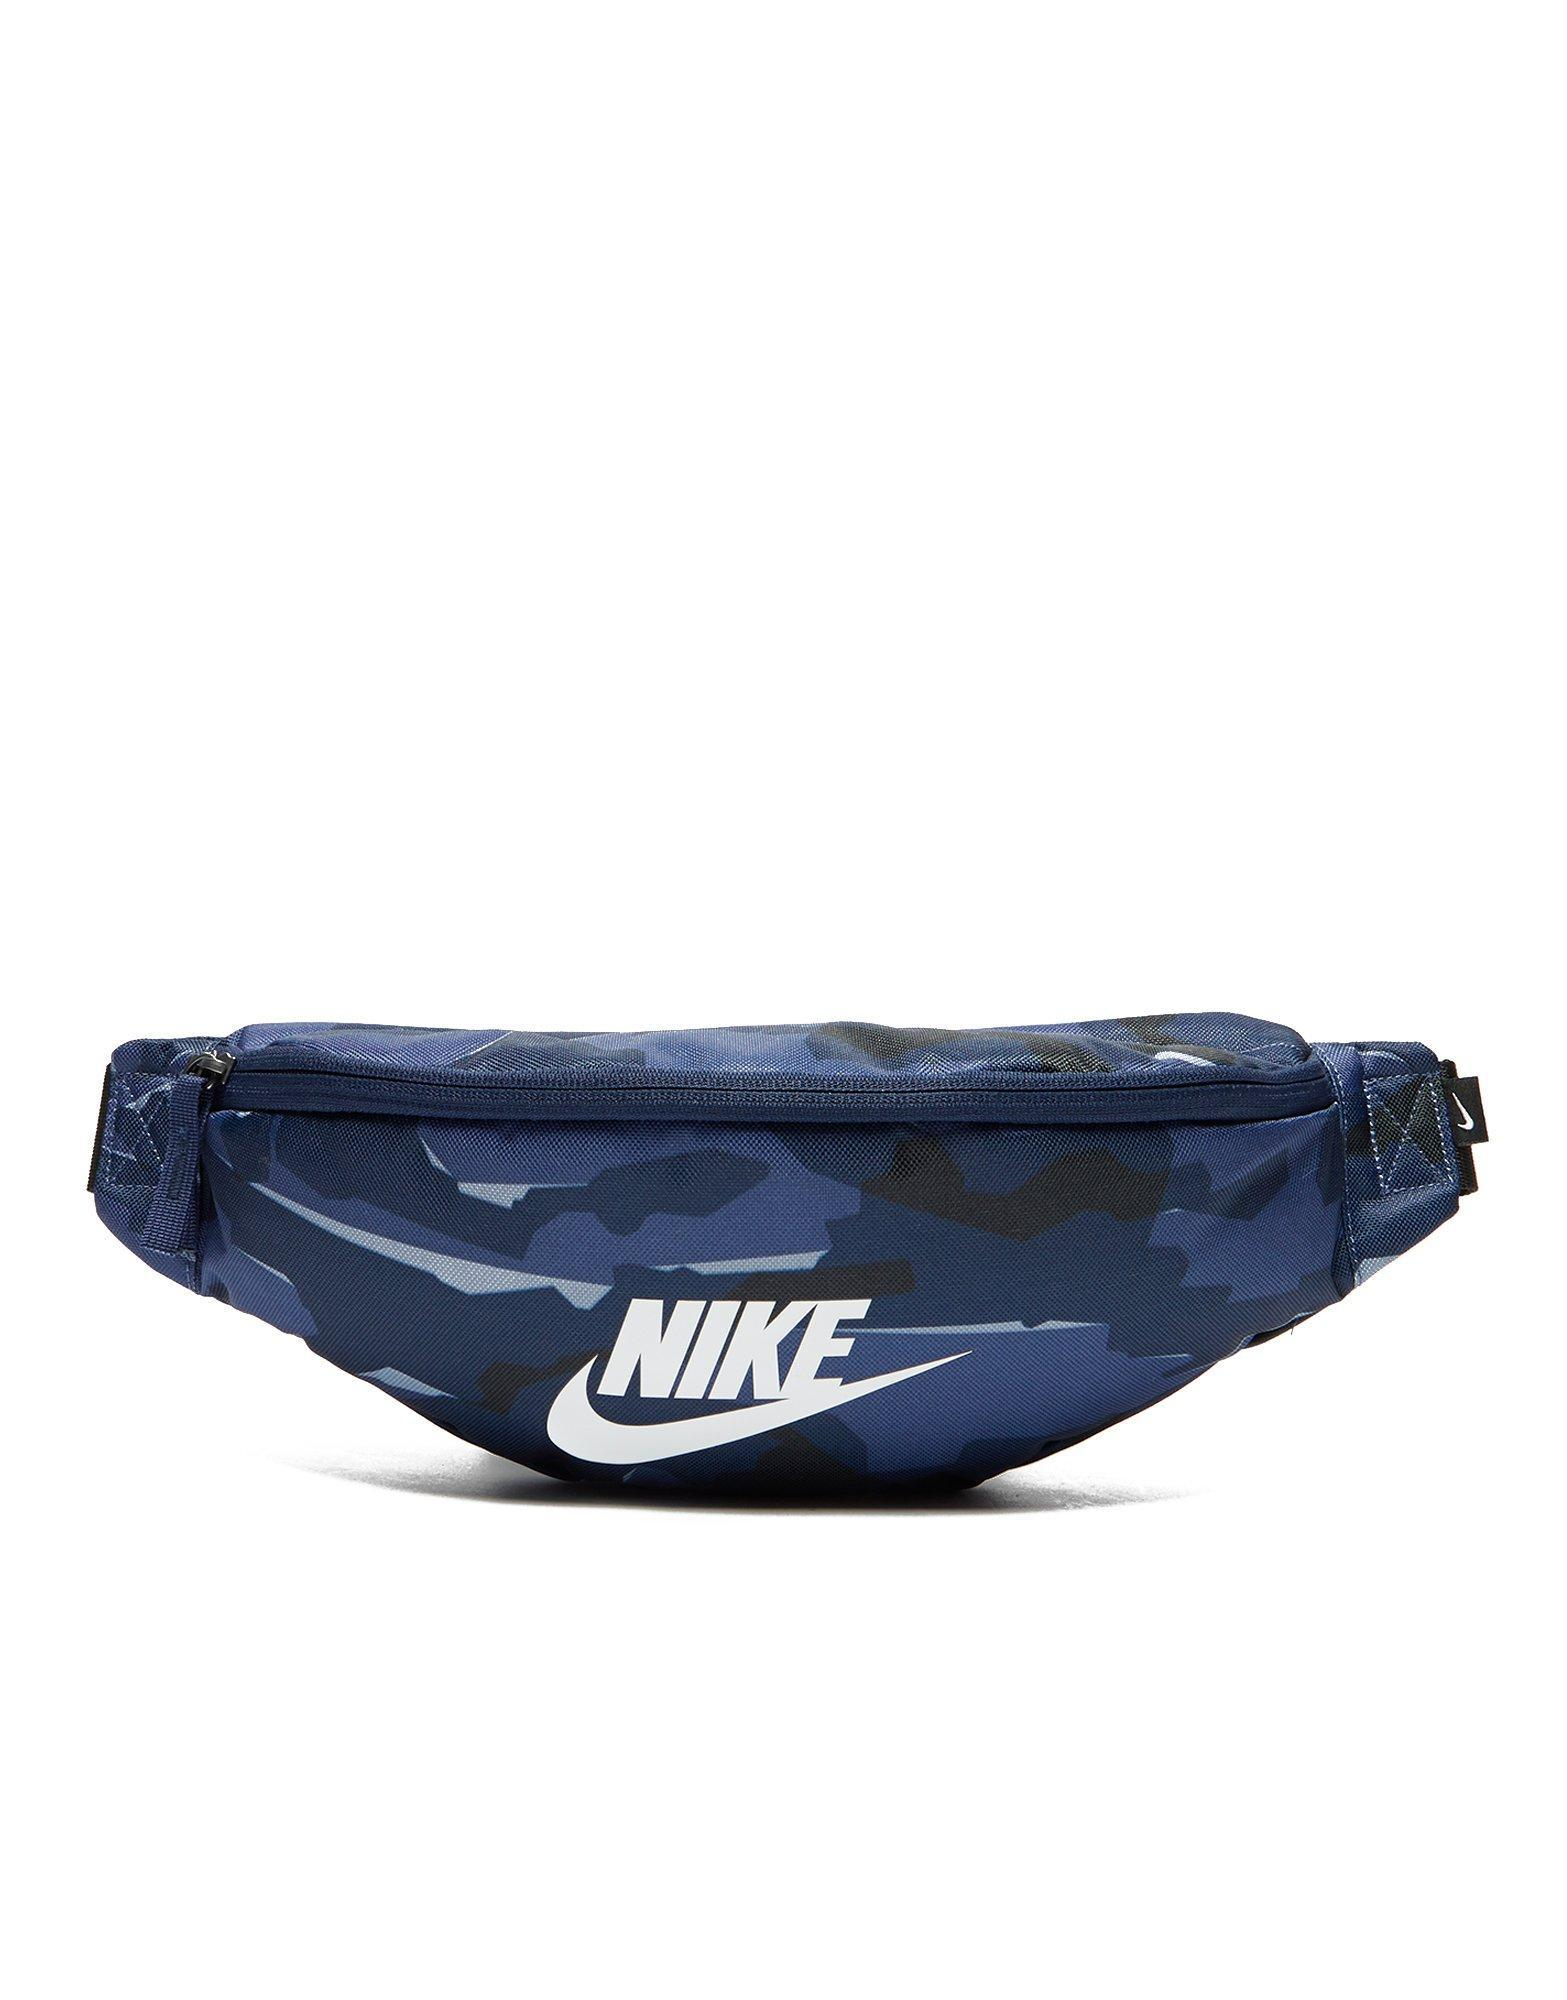 31a7239825 Lyst - Nike Camo Waist Bag in Blue for Men